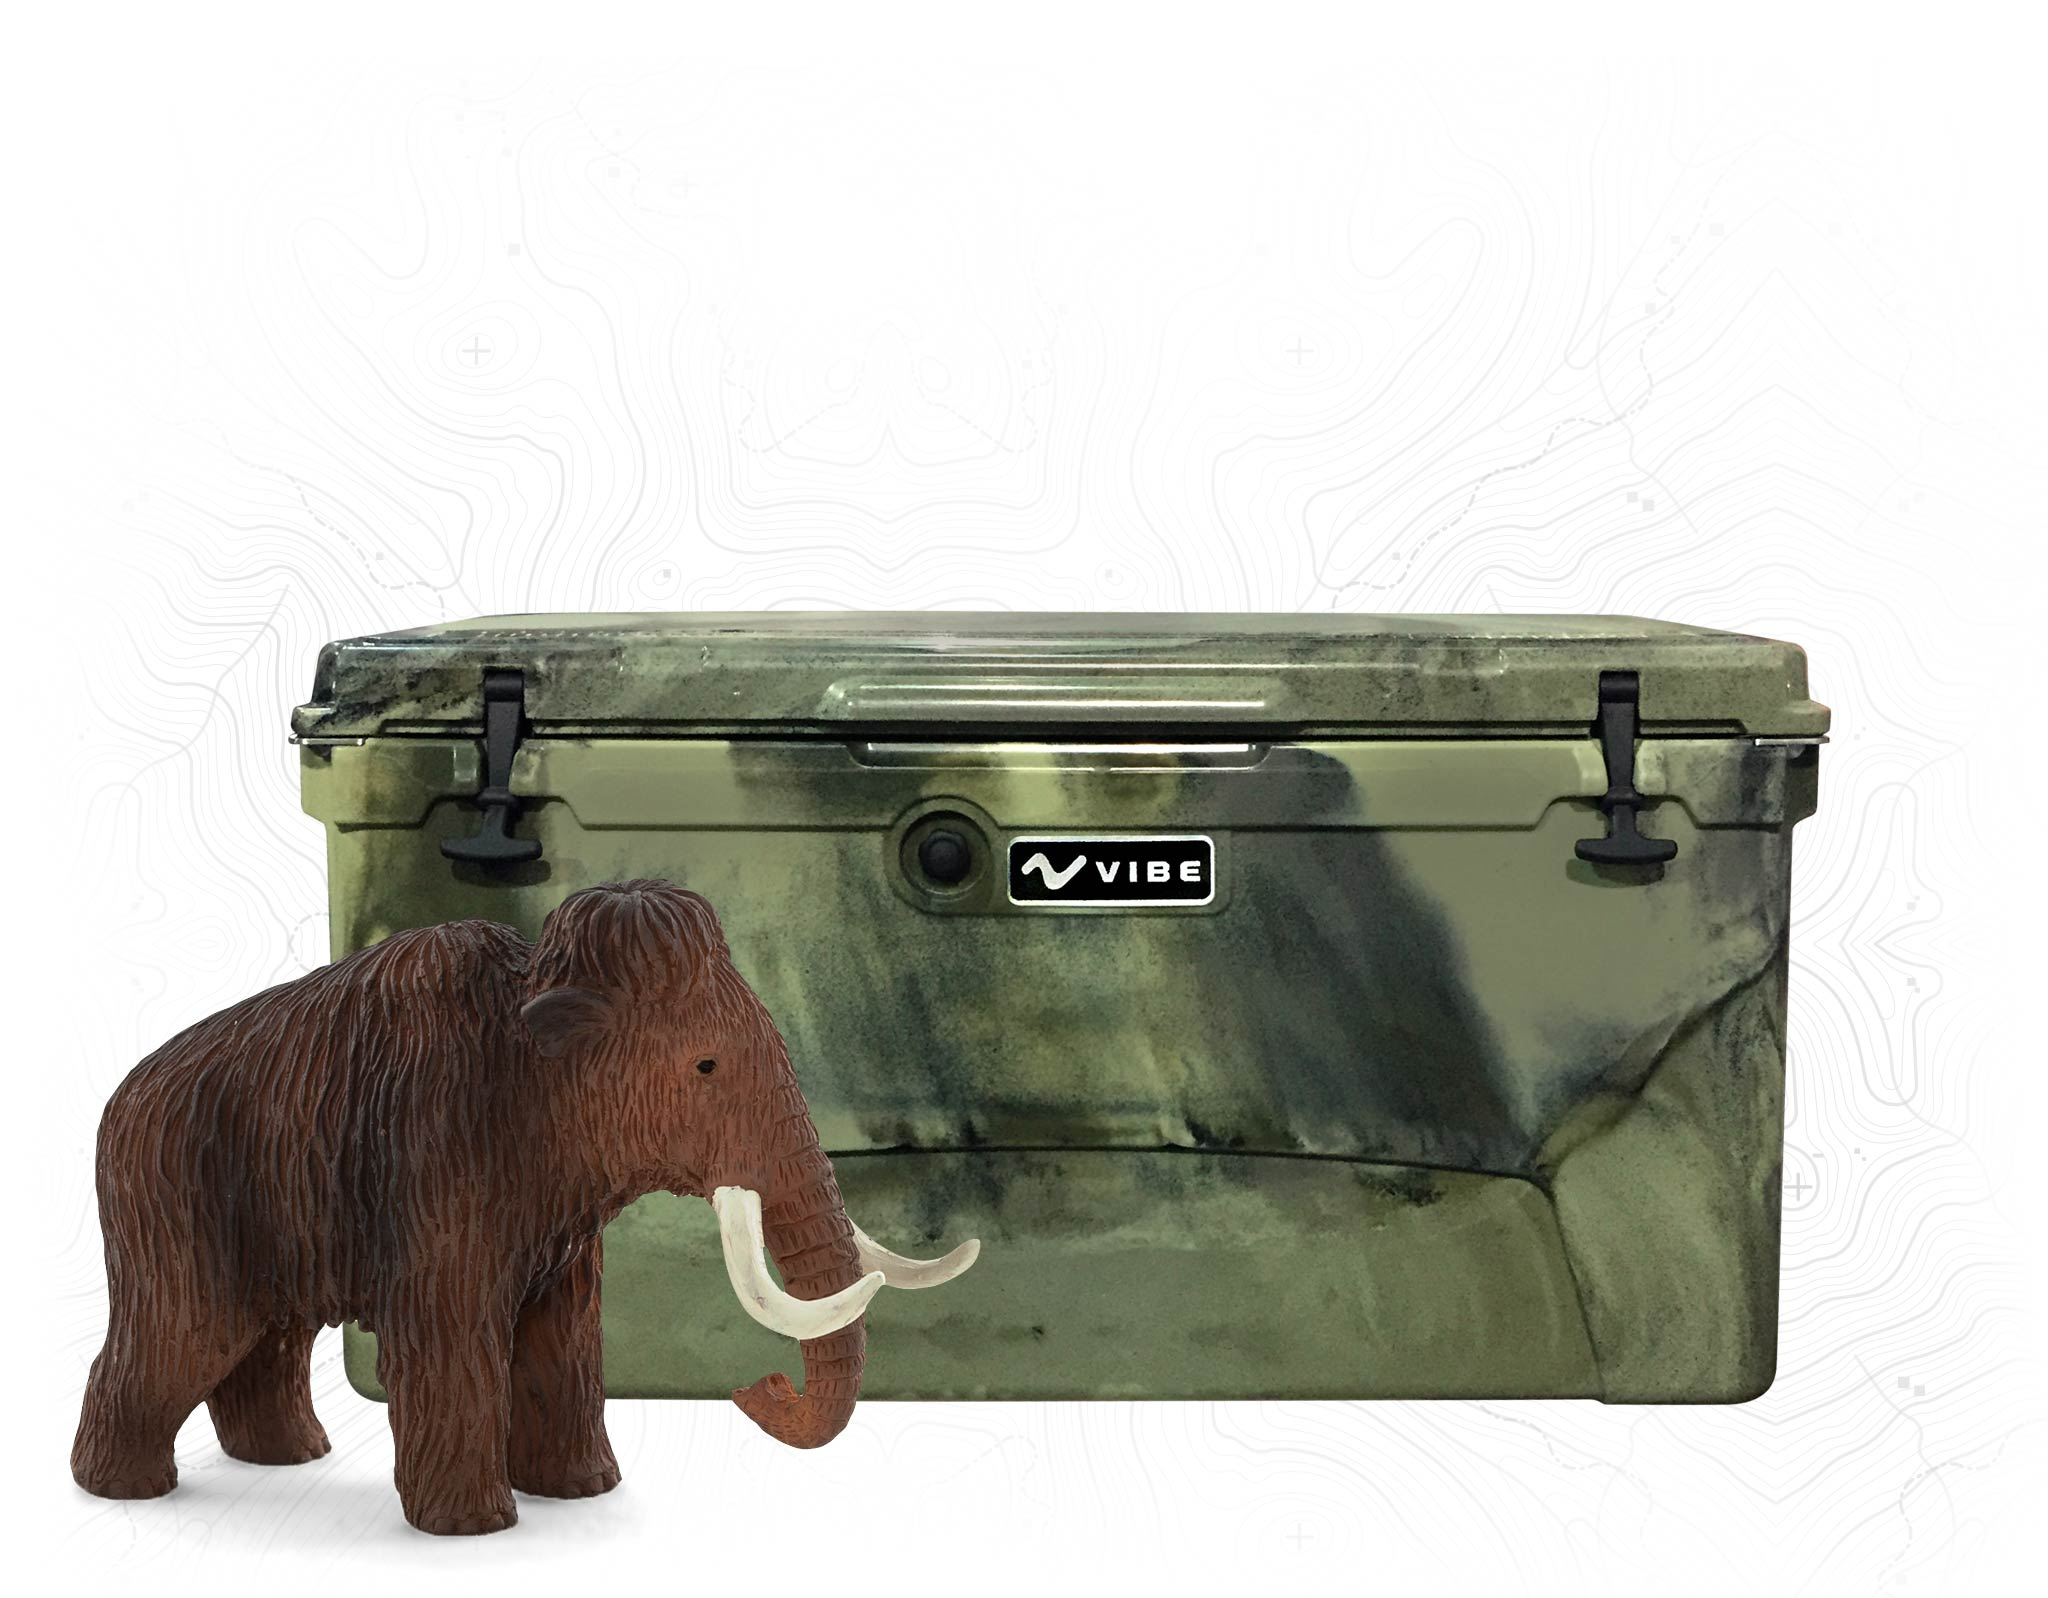 Vibe Element 110 quart rotomolded cooler is wooly mammoth proof